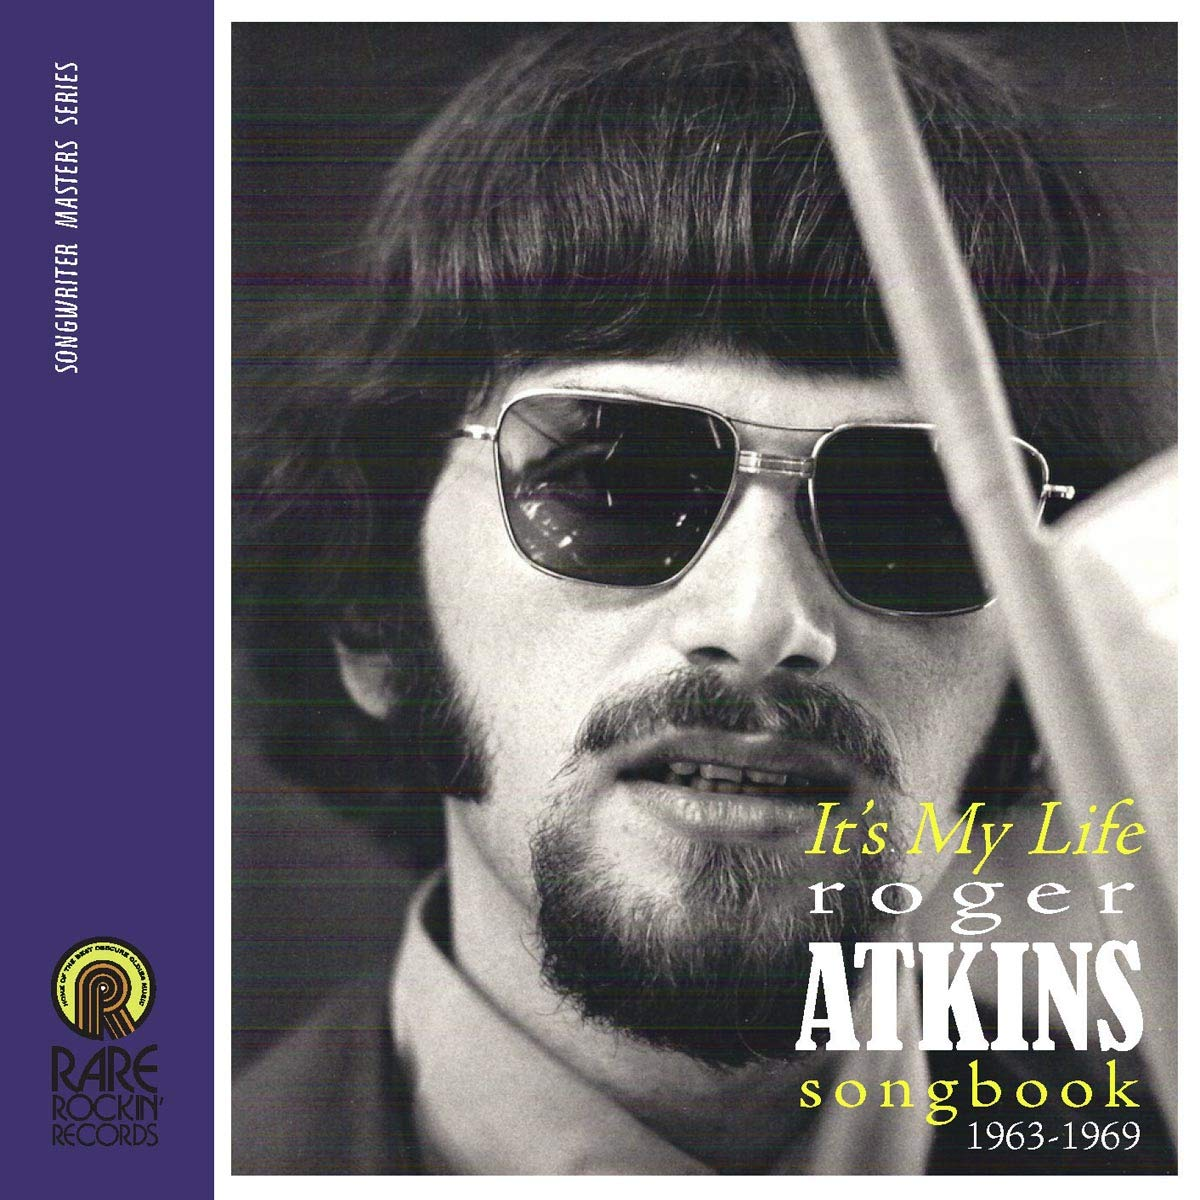 Its My Life (Roger Atkins Songbook 1963-1969)